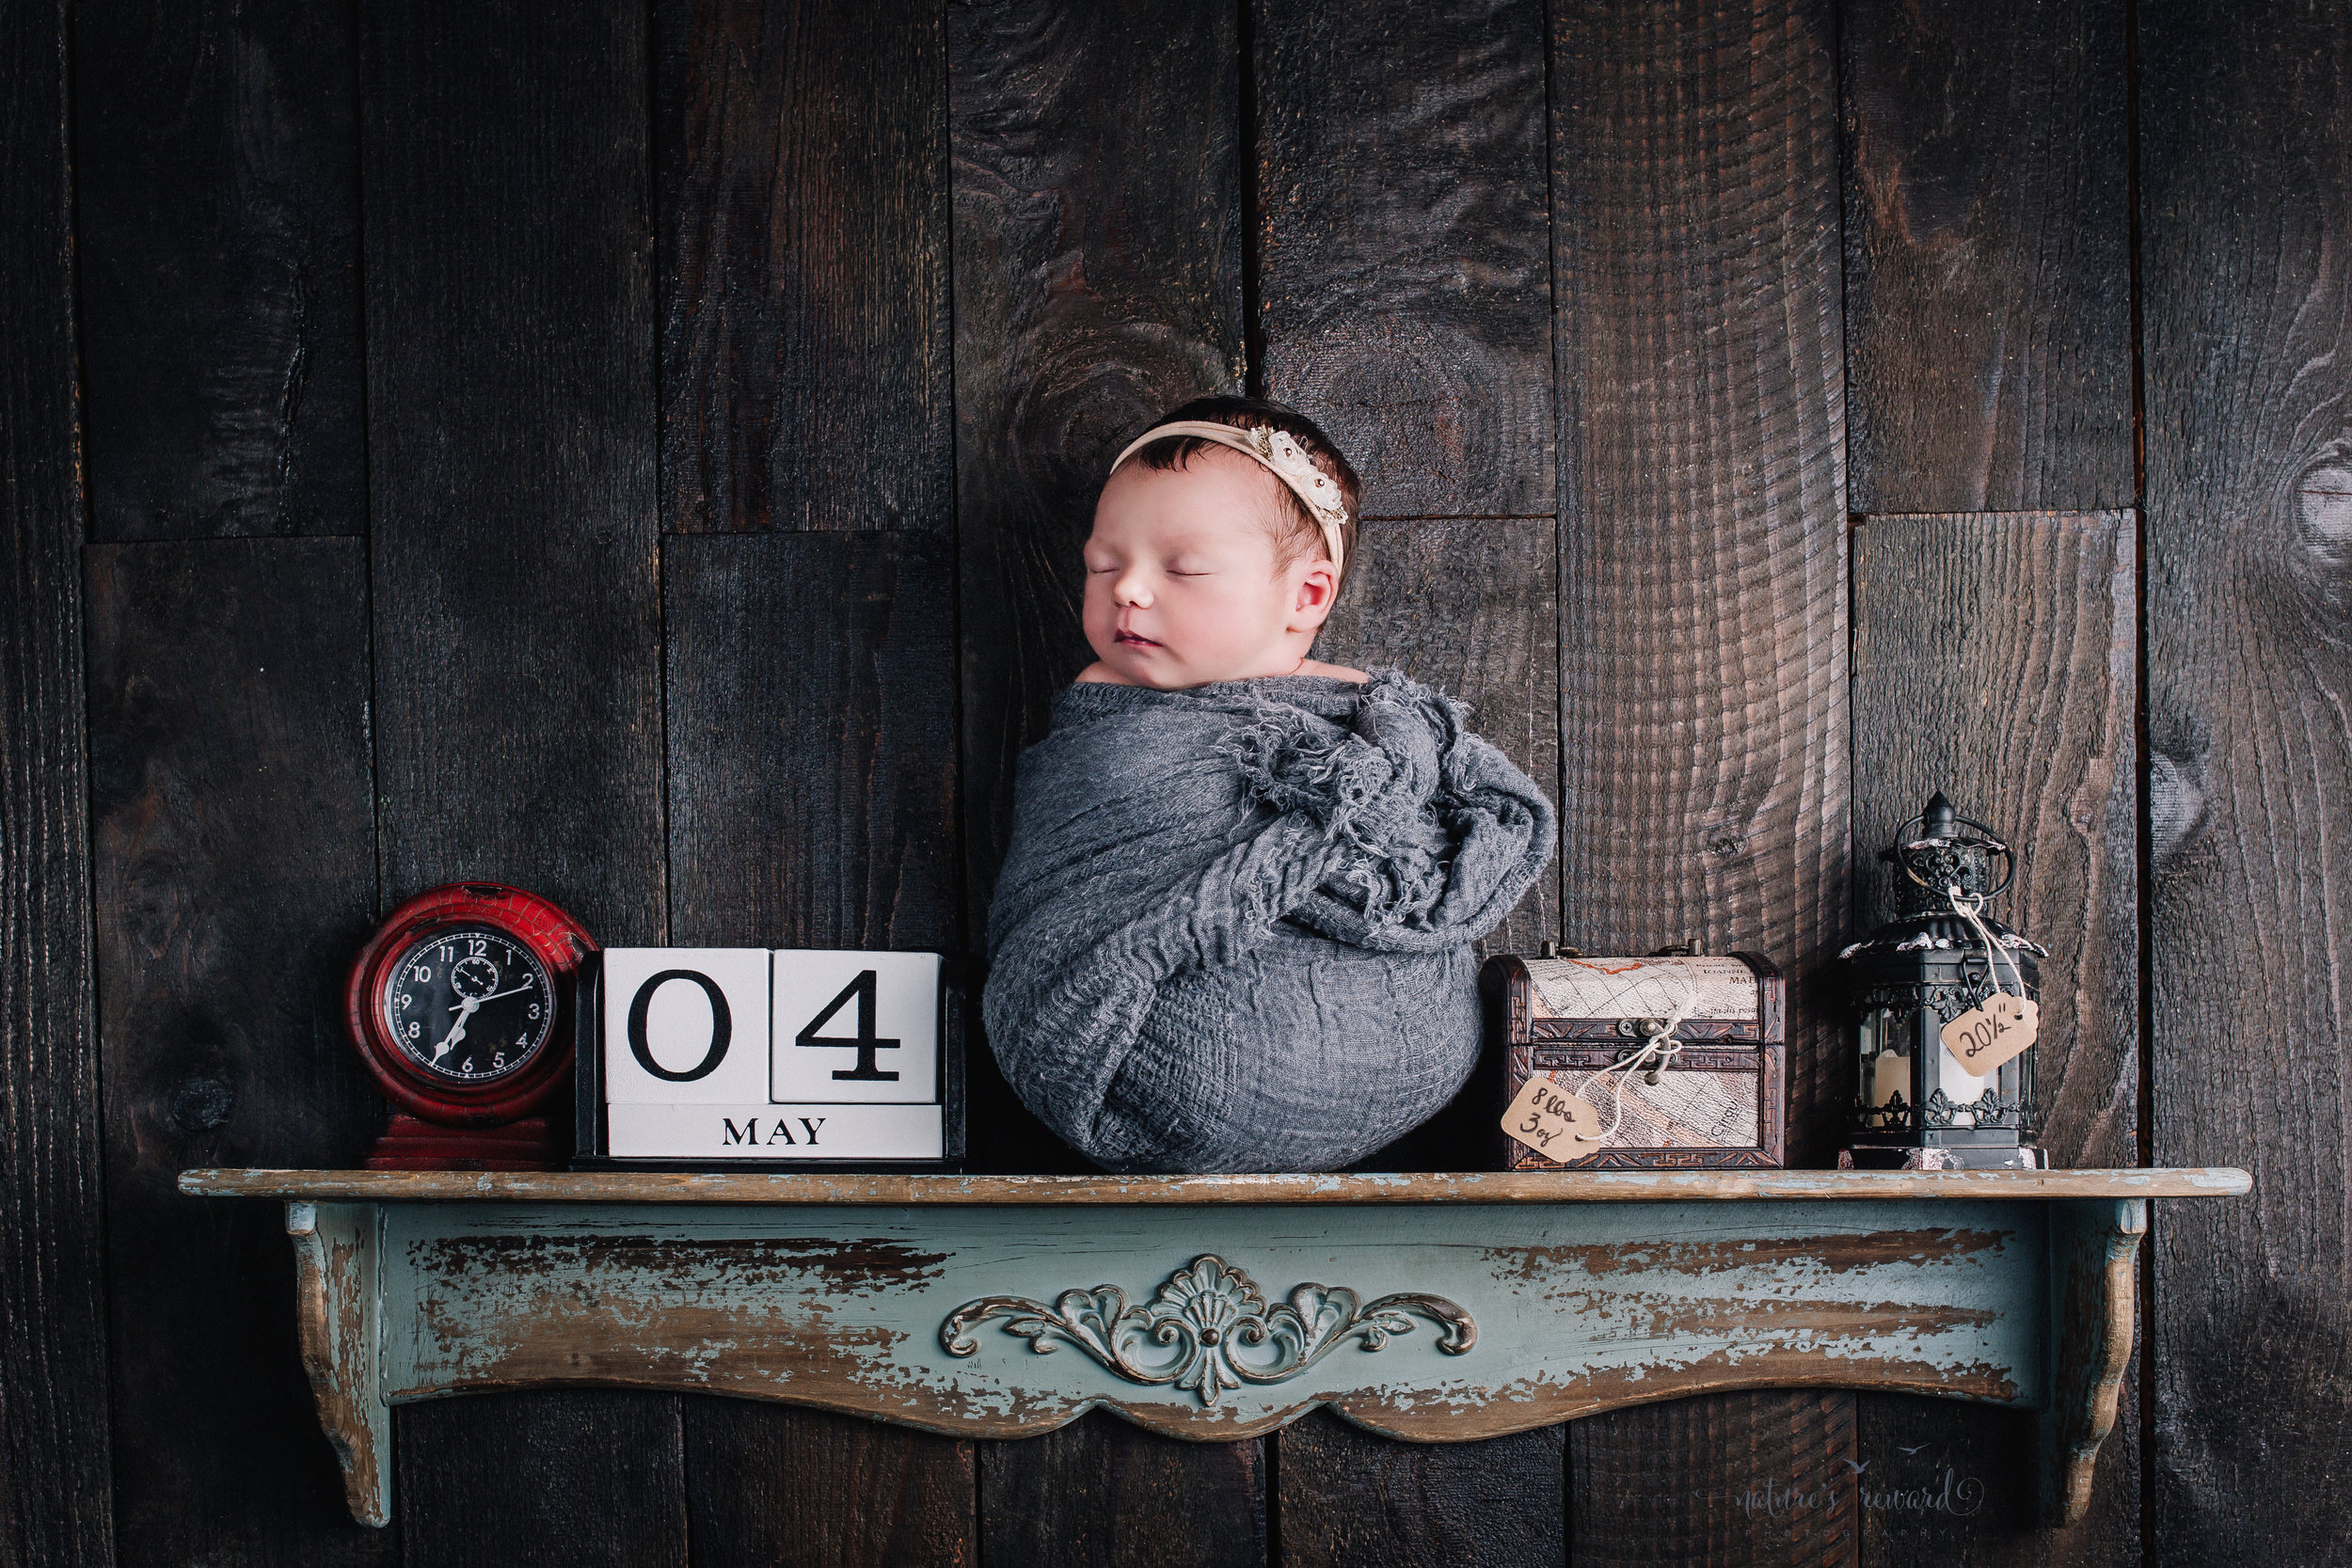 Her birthday story on a shelf. Born at 6:34 on May 4th weighing 8 pounds 3 ounces and 2o inches long in this baby on a shelf portrait by Nature's Reward Photography